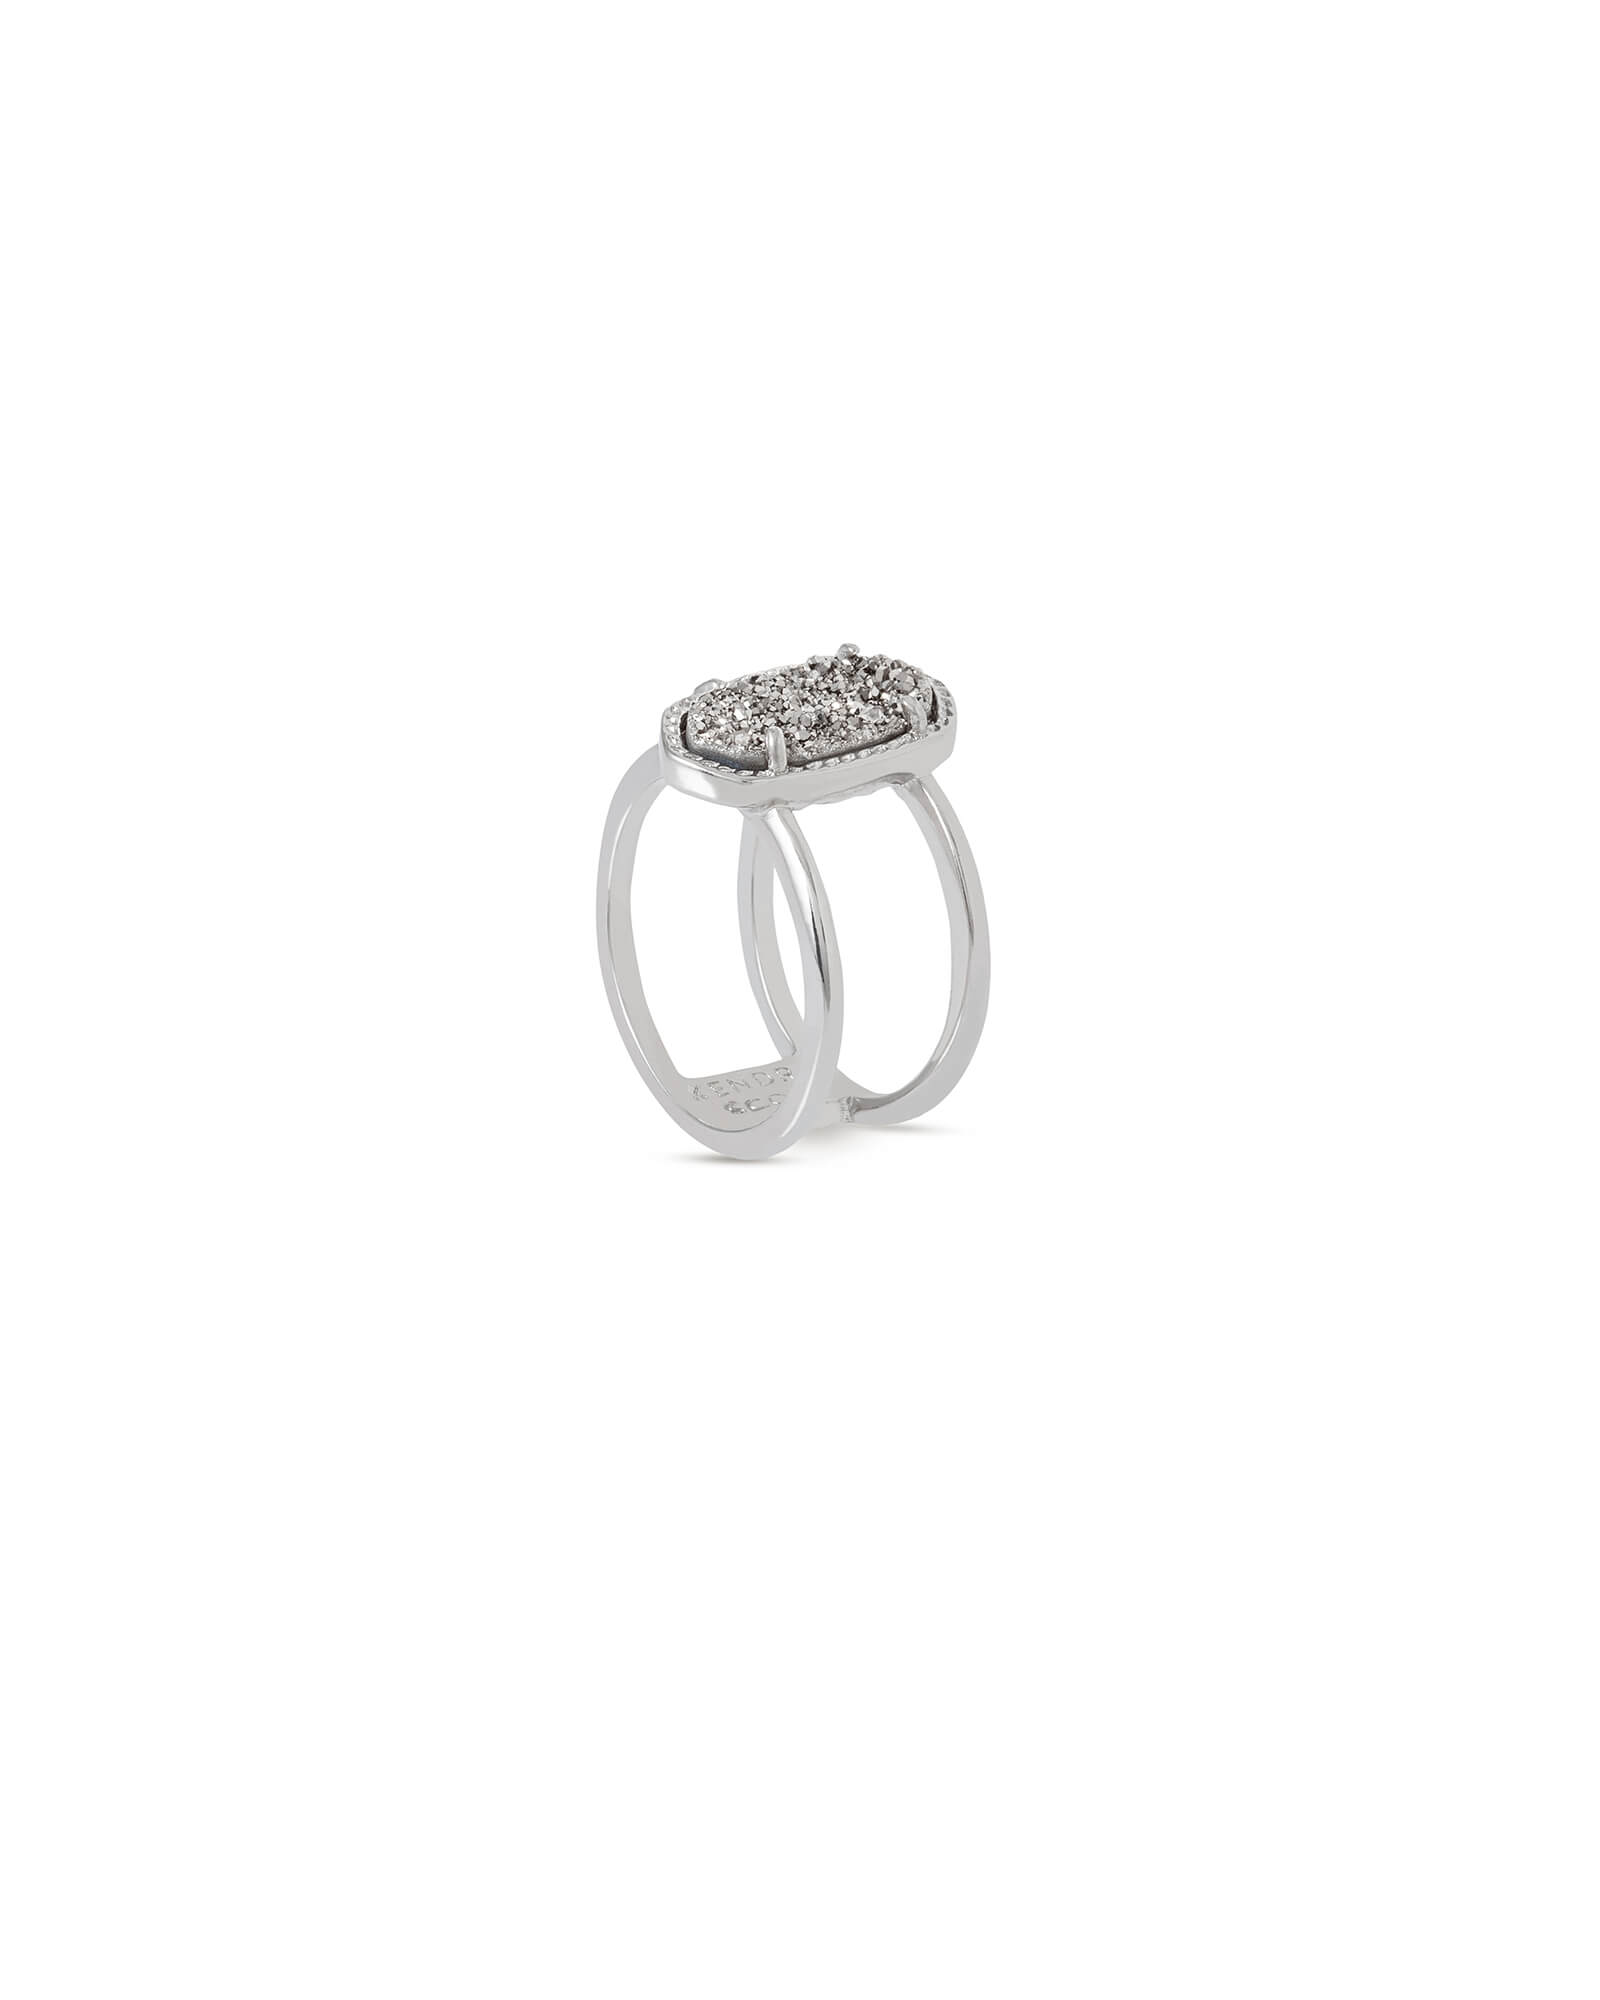 Elyse Ring in Silver